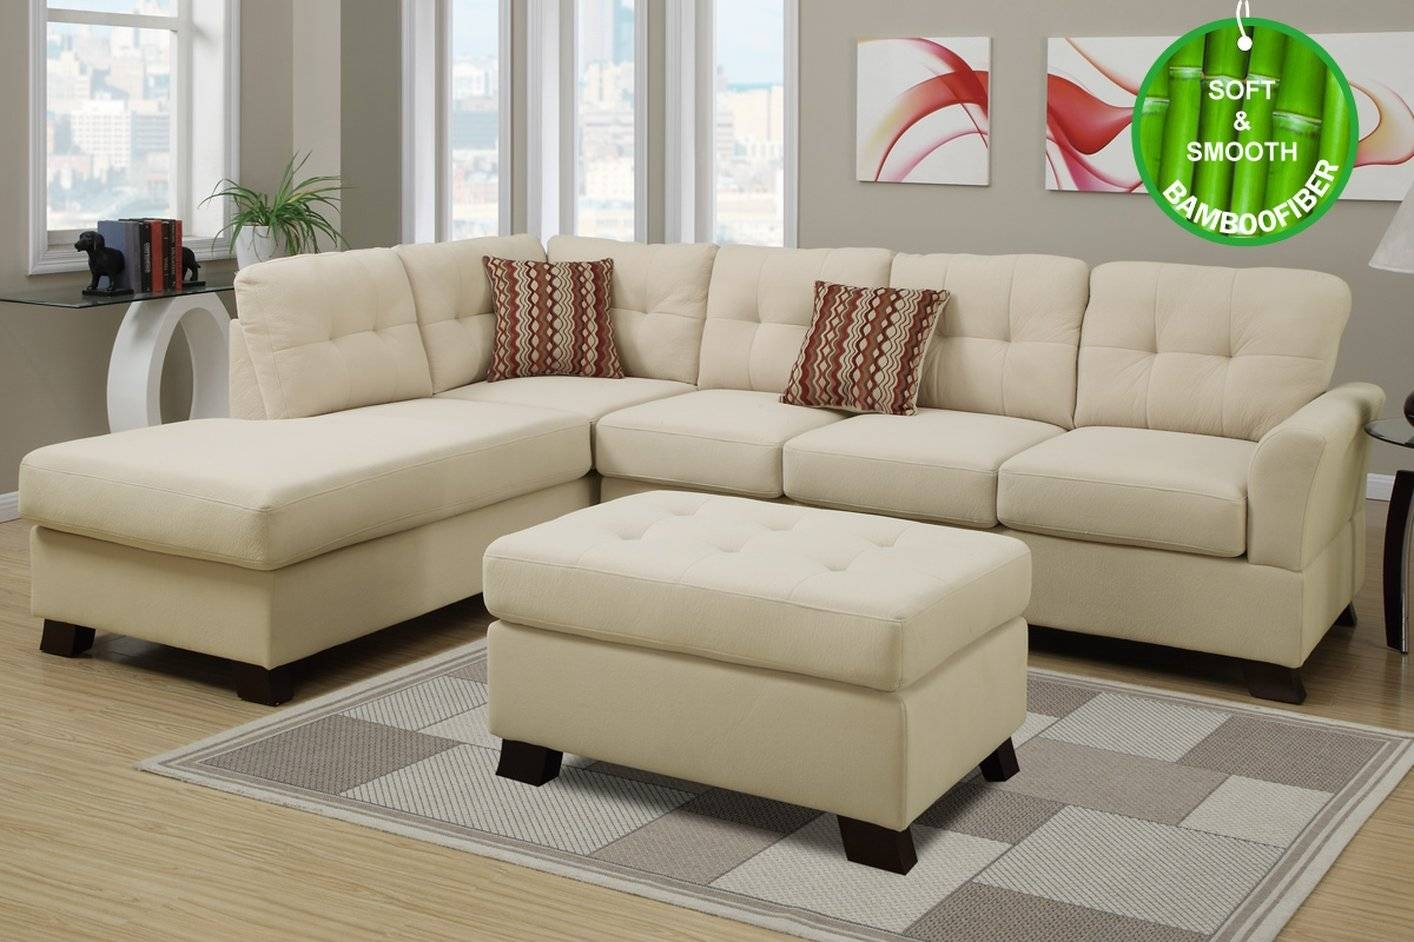 Sofas Center : U Shaped Sectional With Ottoman Show Home Design regarding Sofa With Chaise and Ottoman (Image 29 of 30)